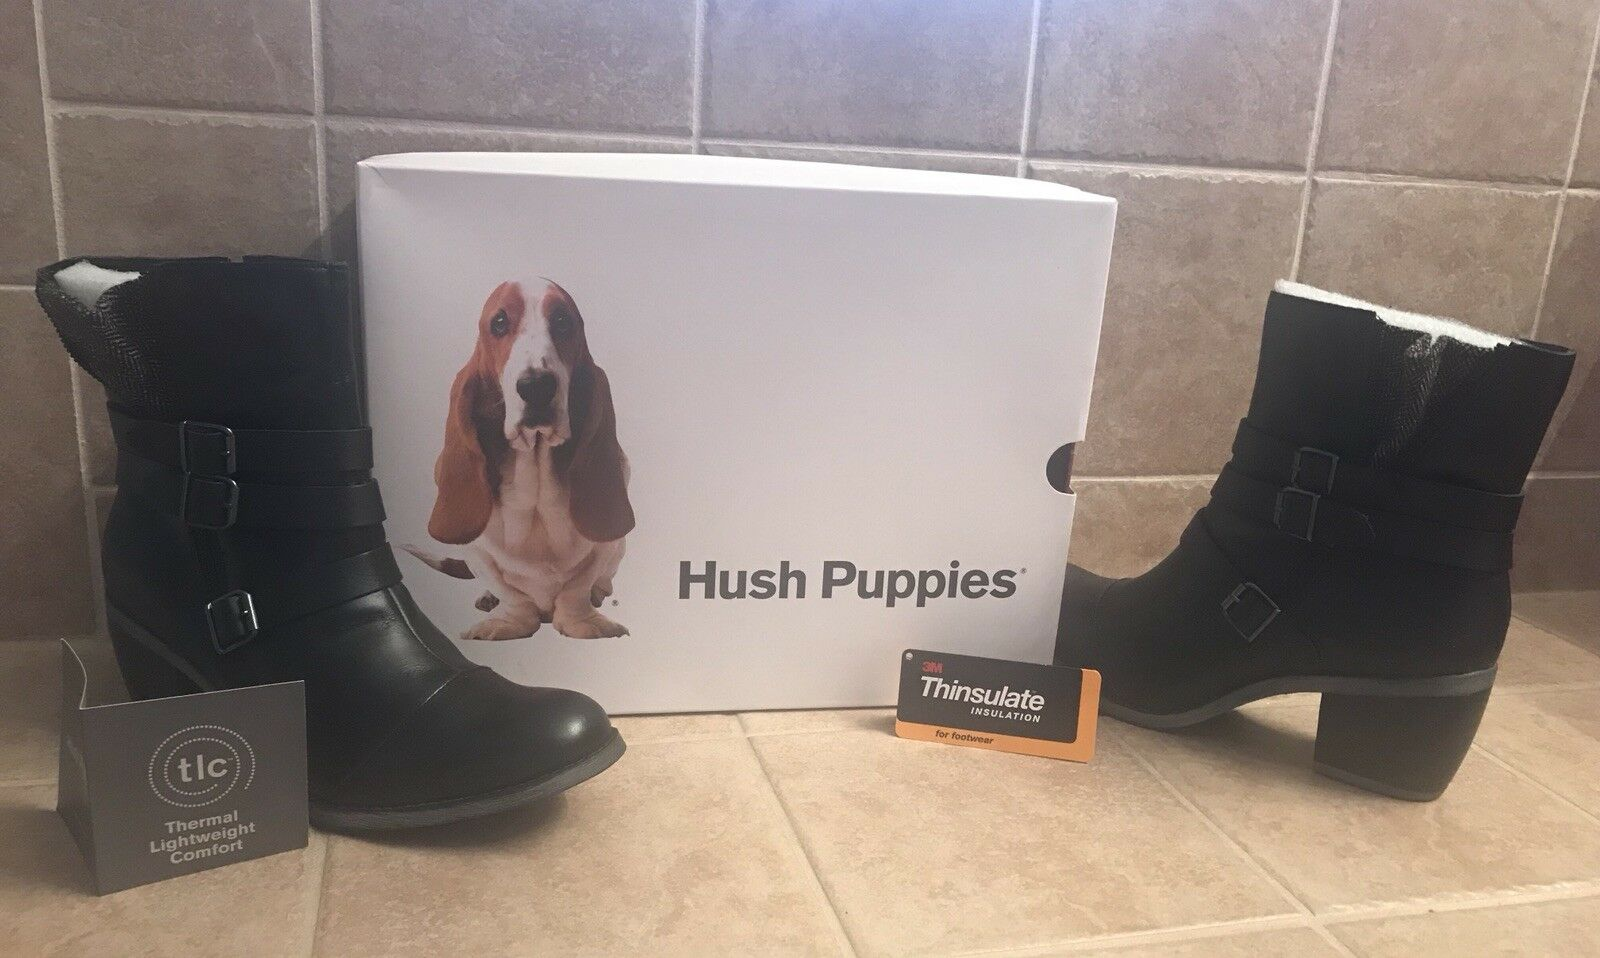 HUSH PUPPIES RUSTIQUE ANKLE BOOTS BLACK WP Leather Insulated Waterproof Warm 10